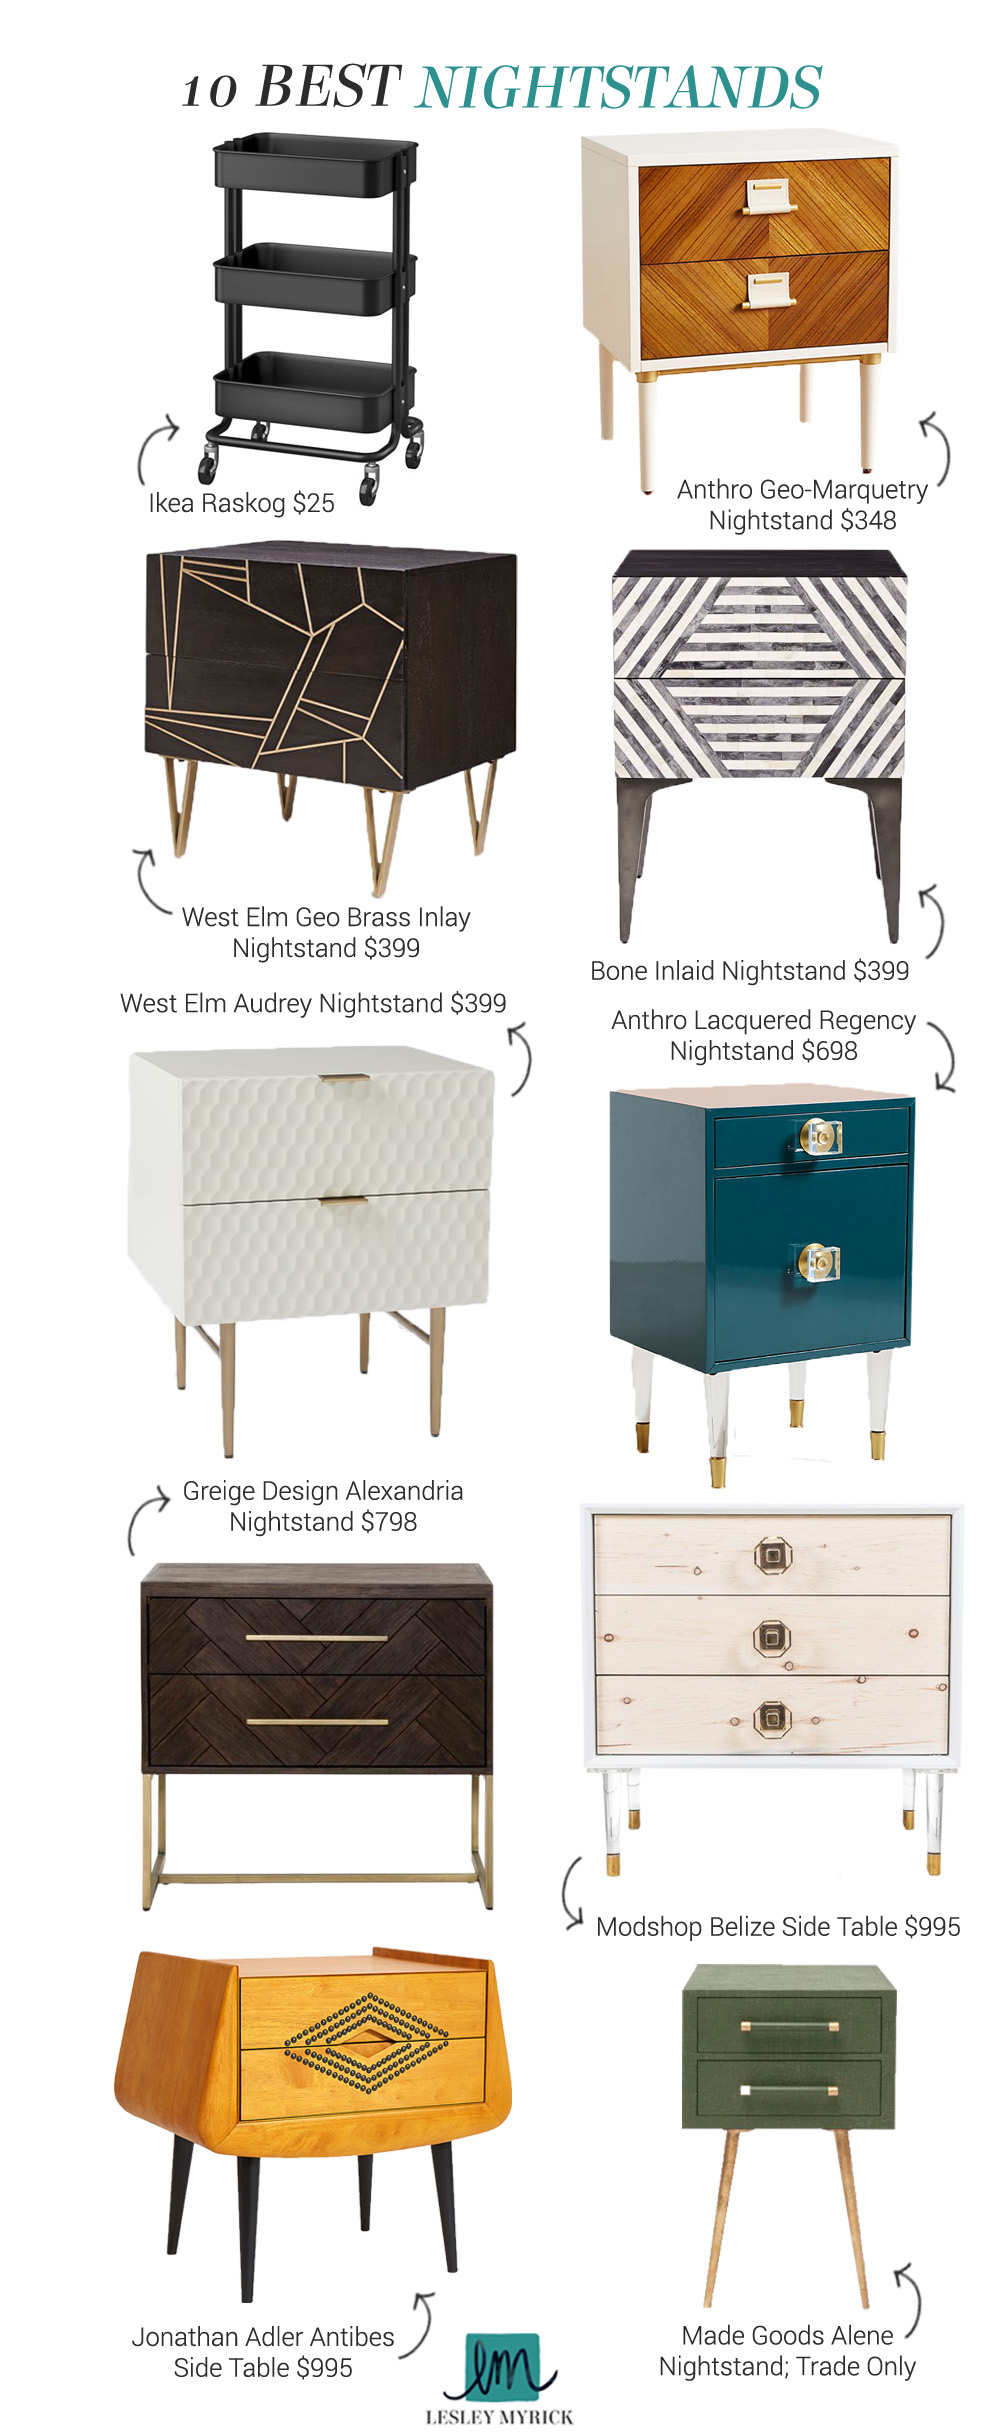 The 10 best nightstands - designer picks from interior stylist Lesley Myrick